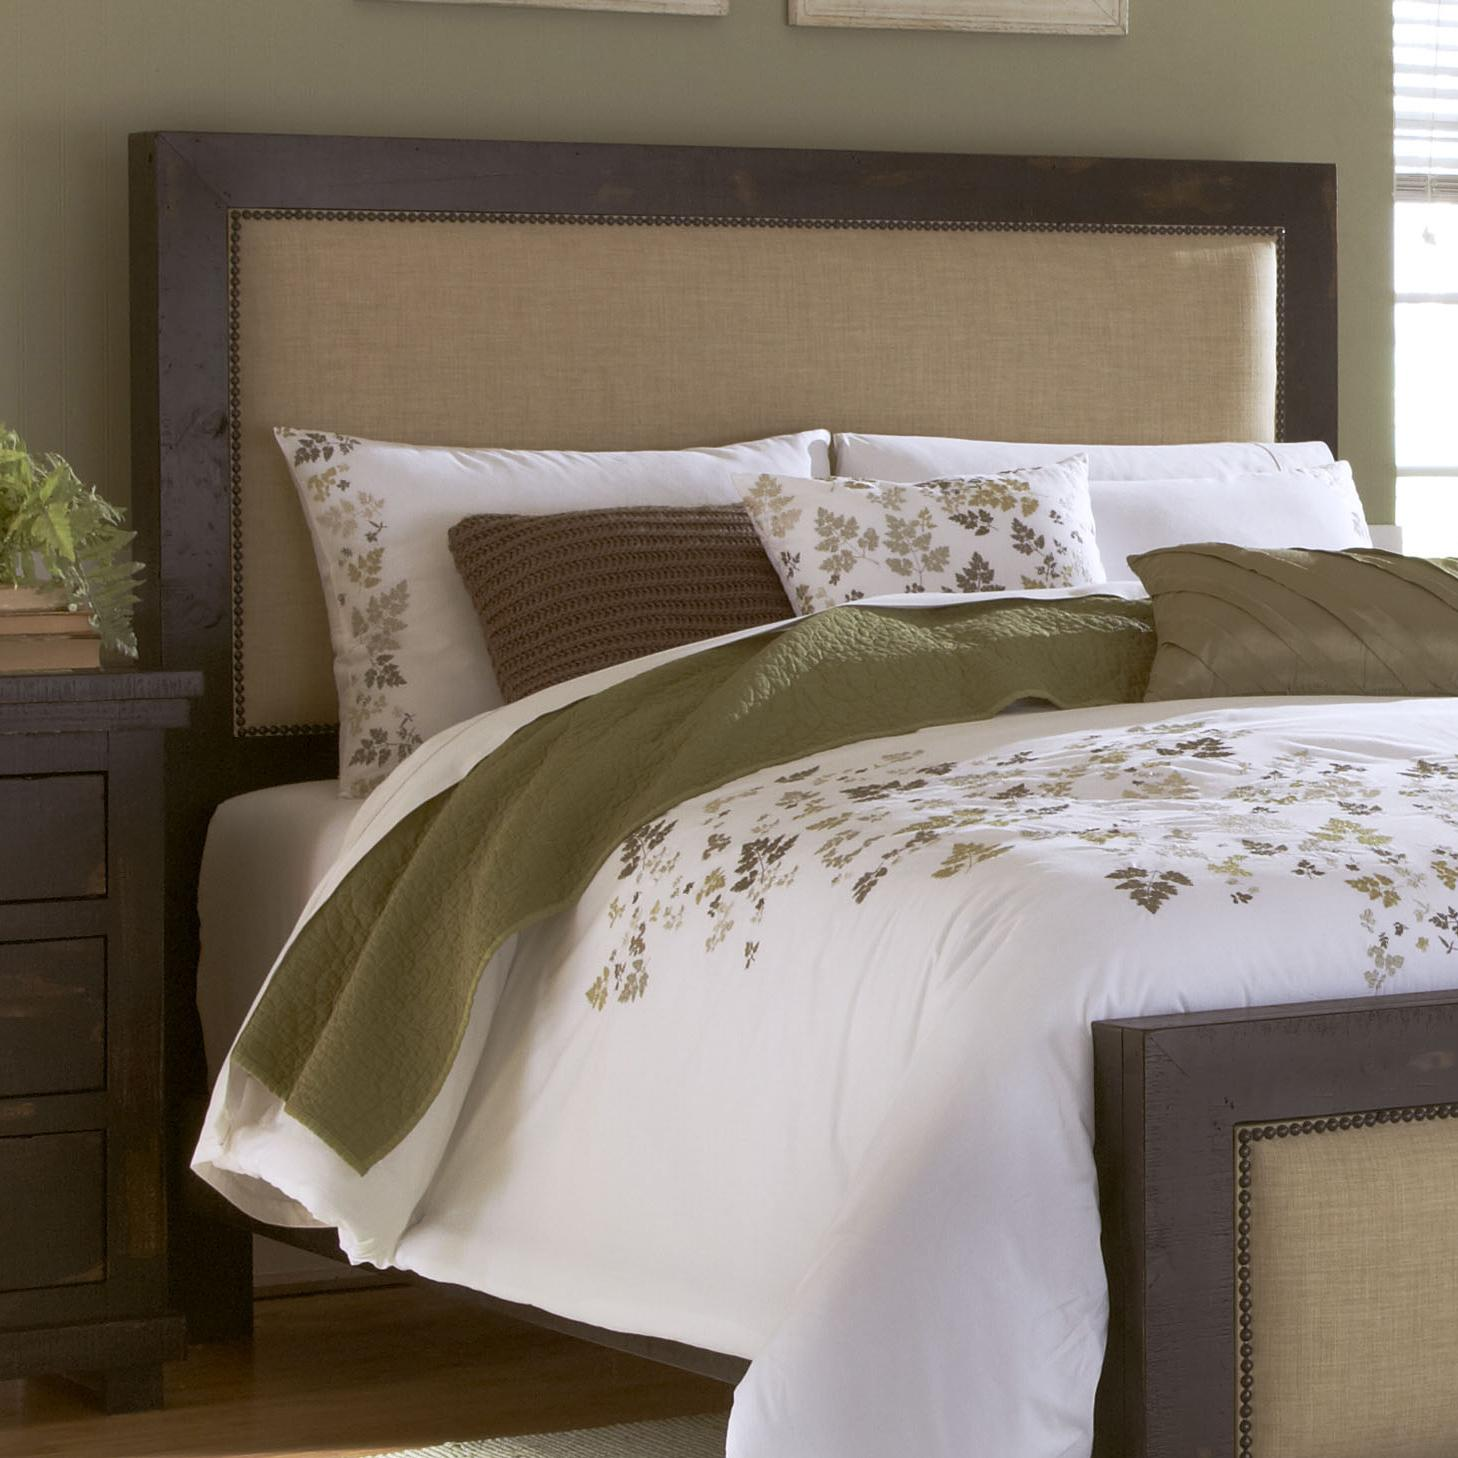 queen upholstered headboard and frame baxton studio queen upholstered headboard progressive furniture willow with